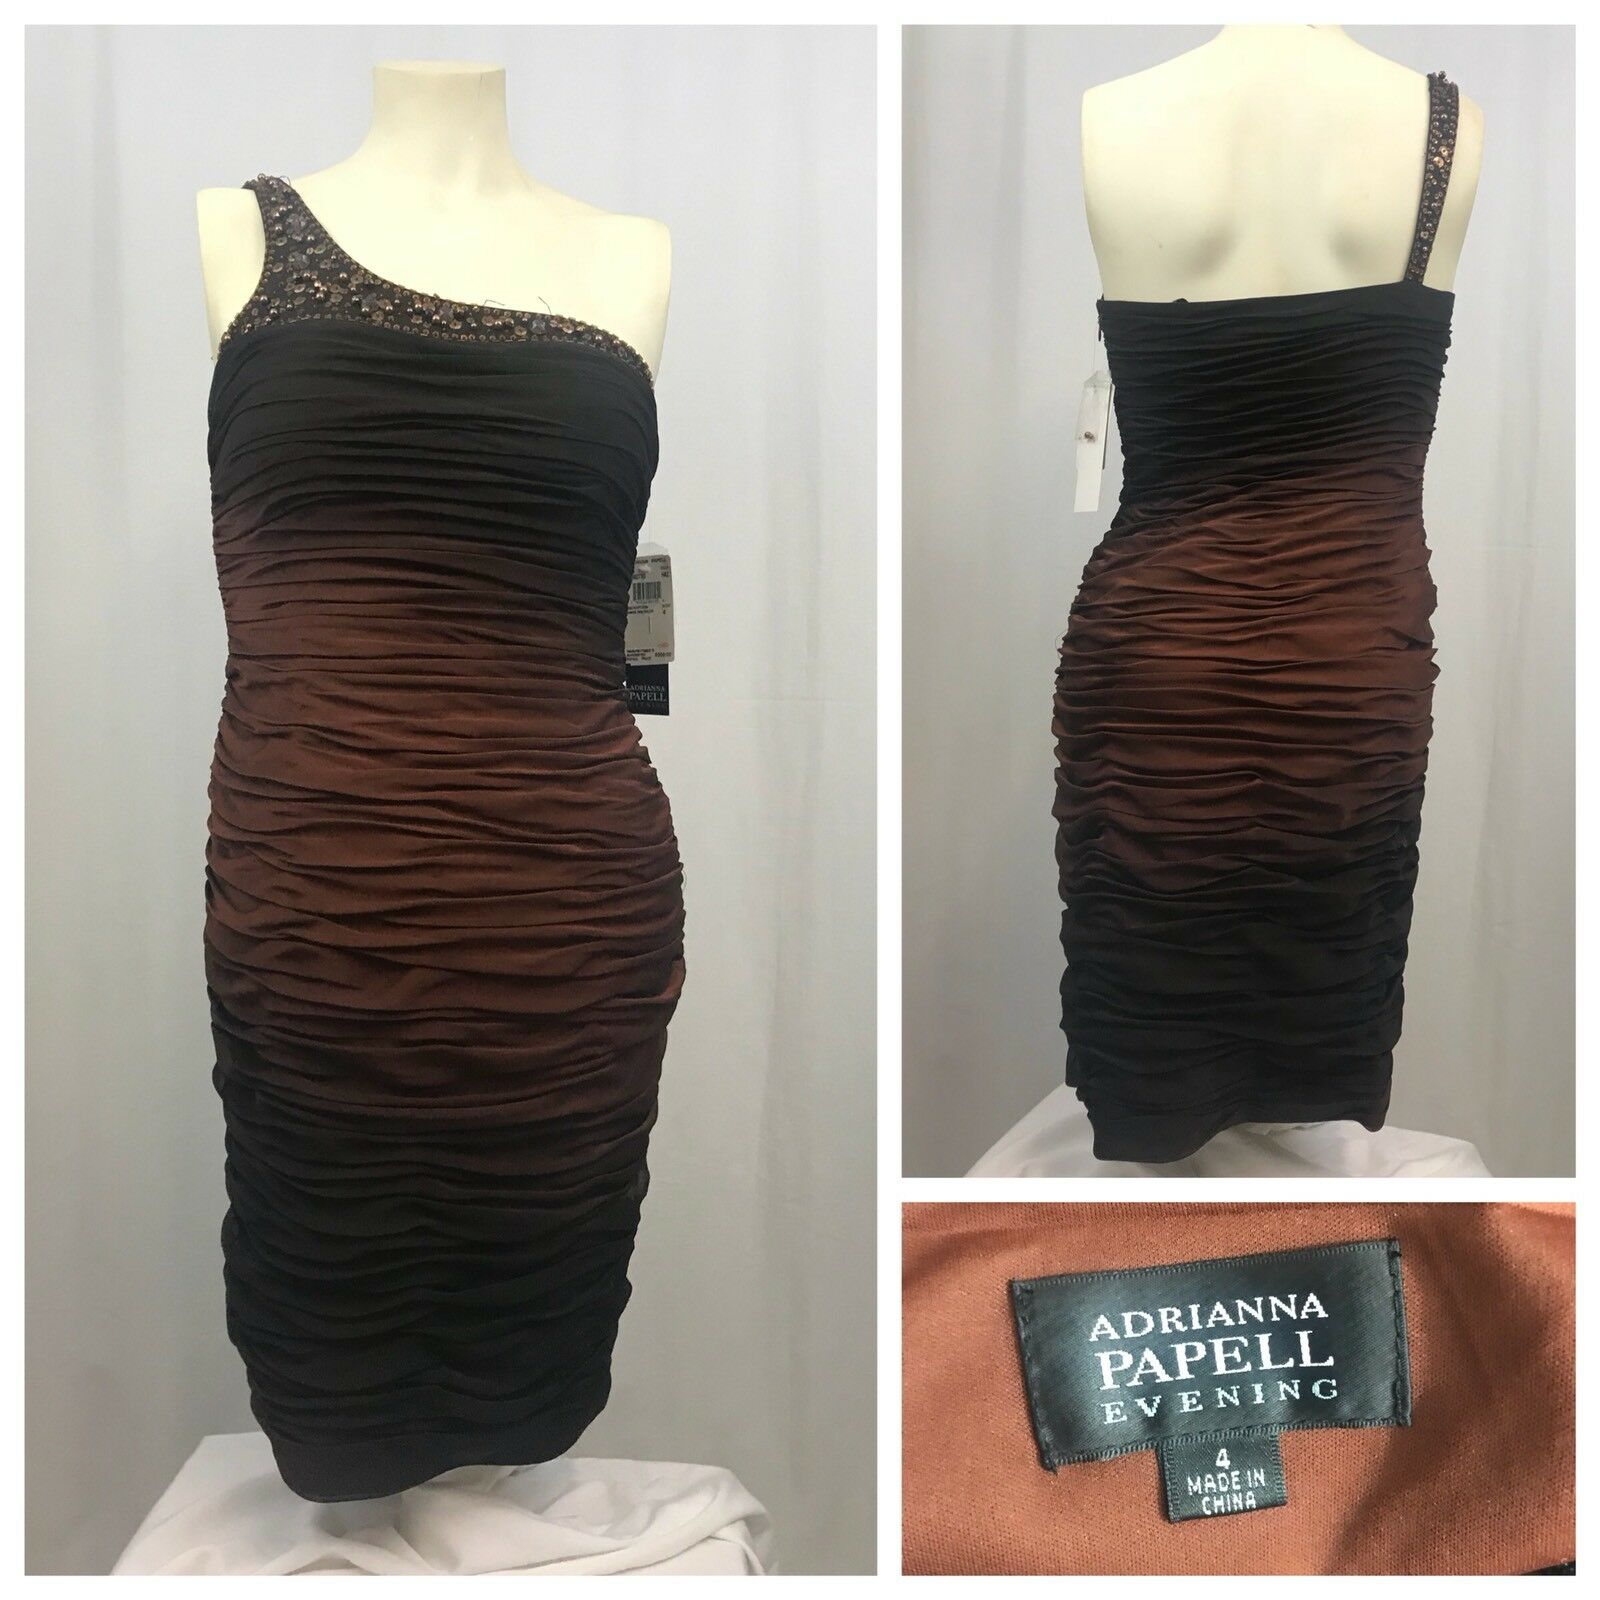 ADRIANNA PAPELL EVENING Womens Sequin One Shoulder Ombre Brown Dress NWT Size 4